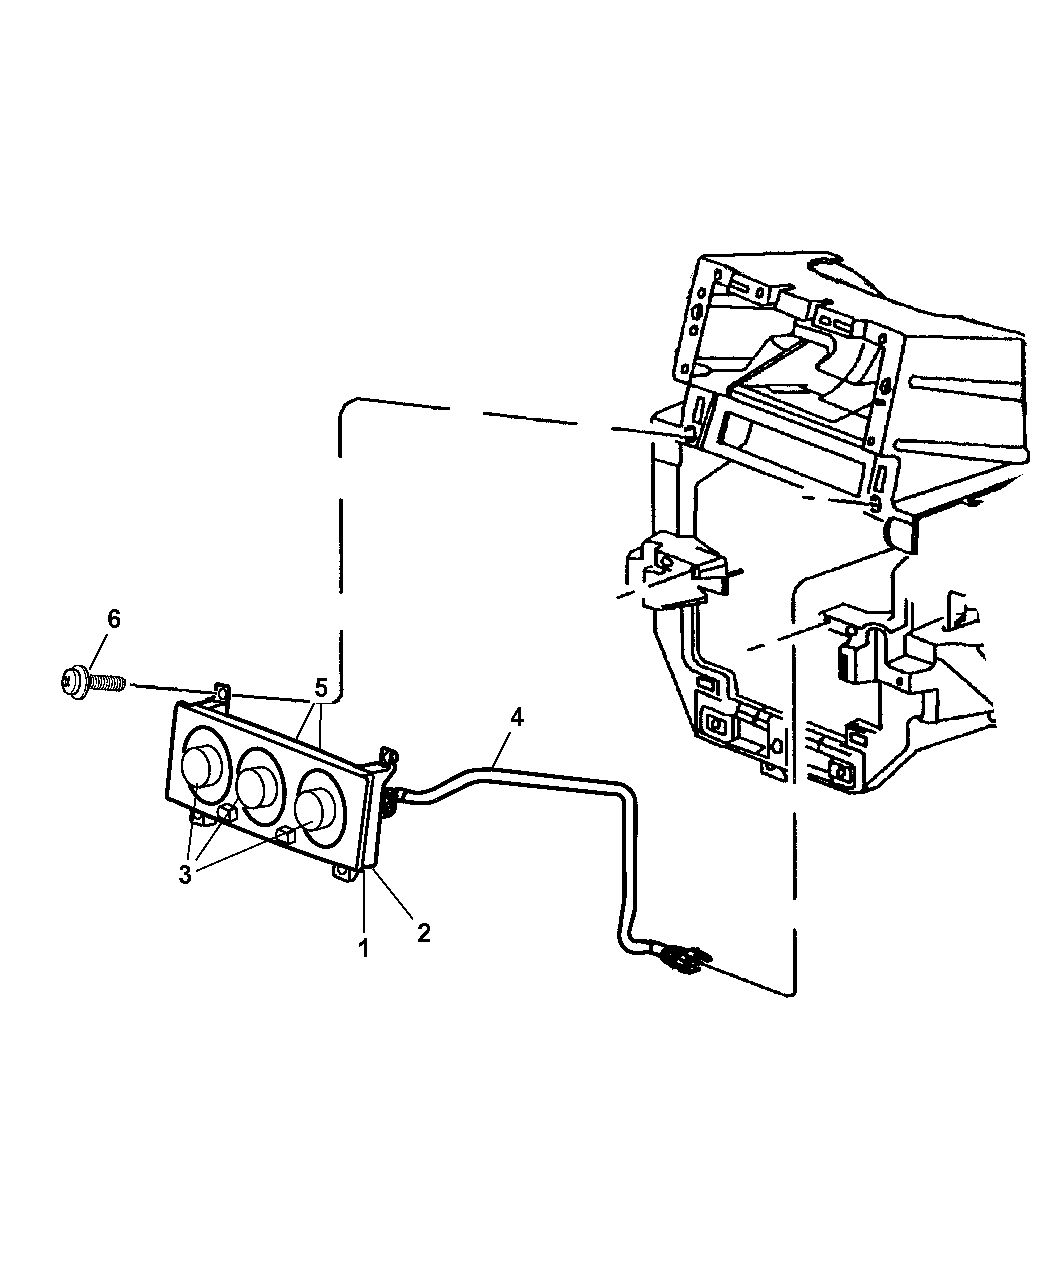 Jeep Grand Cherokee Control Heater And Air Conditioner